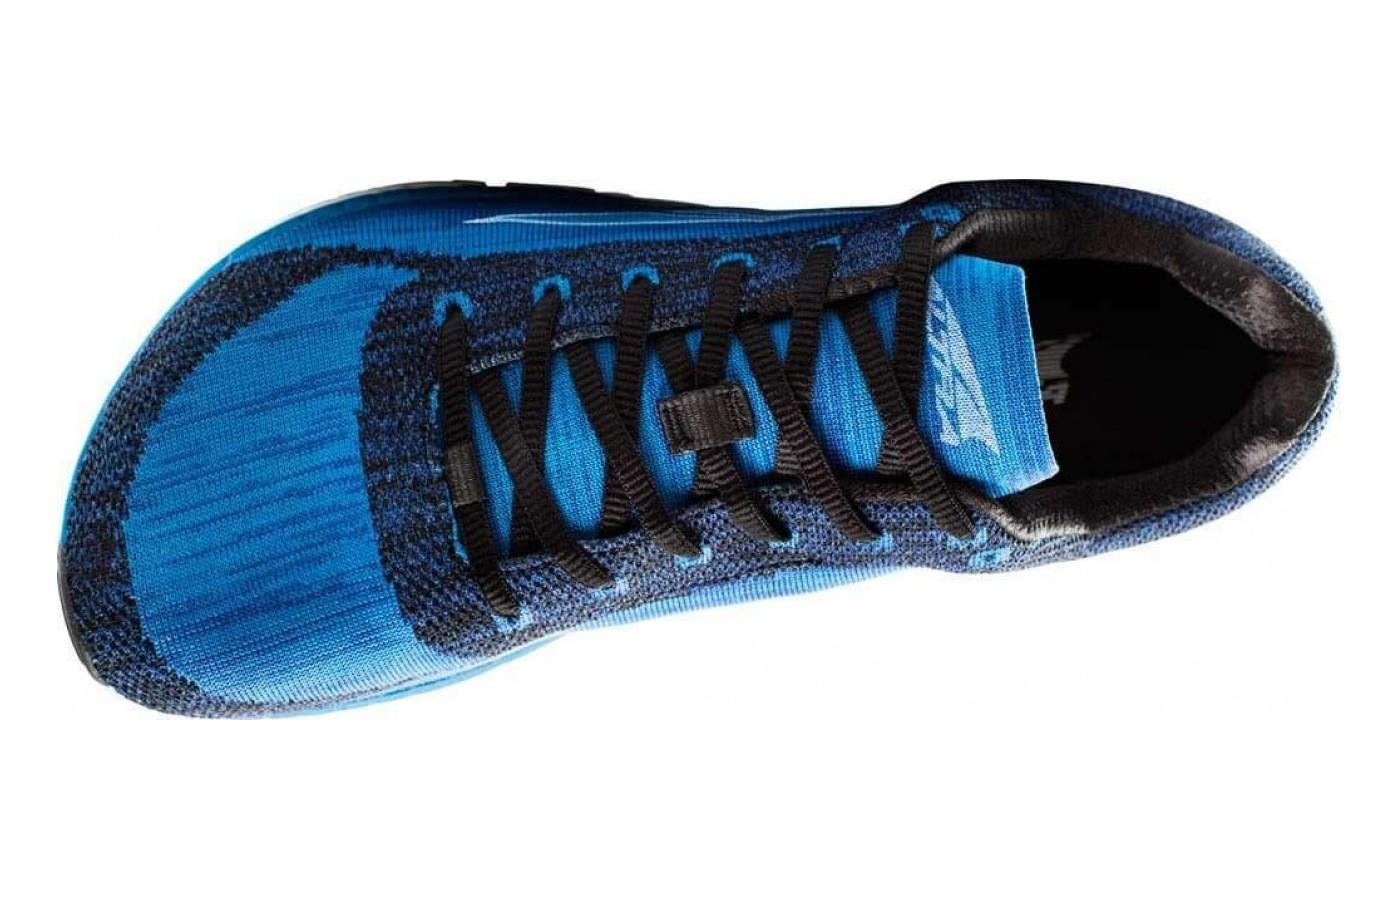 Altra Esclante top view showcasing the natural foot shape and wider toe box